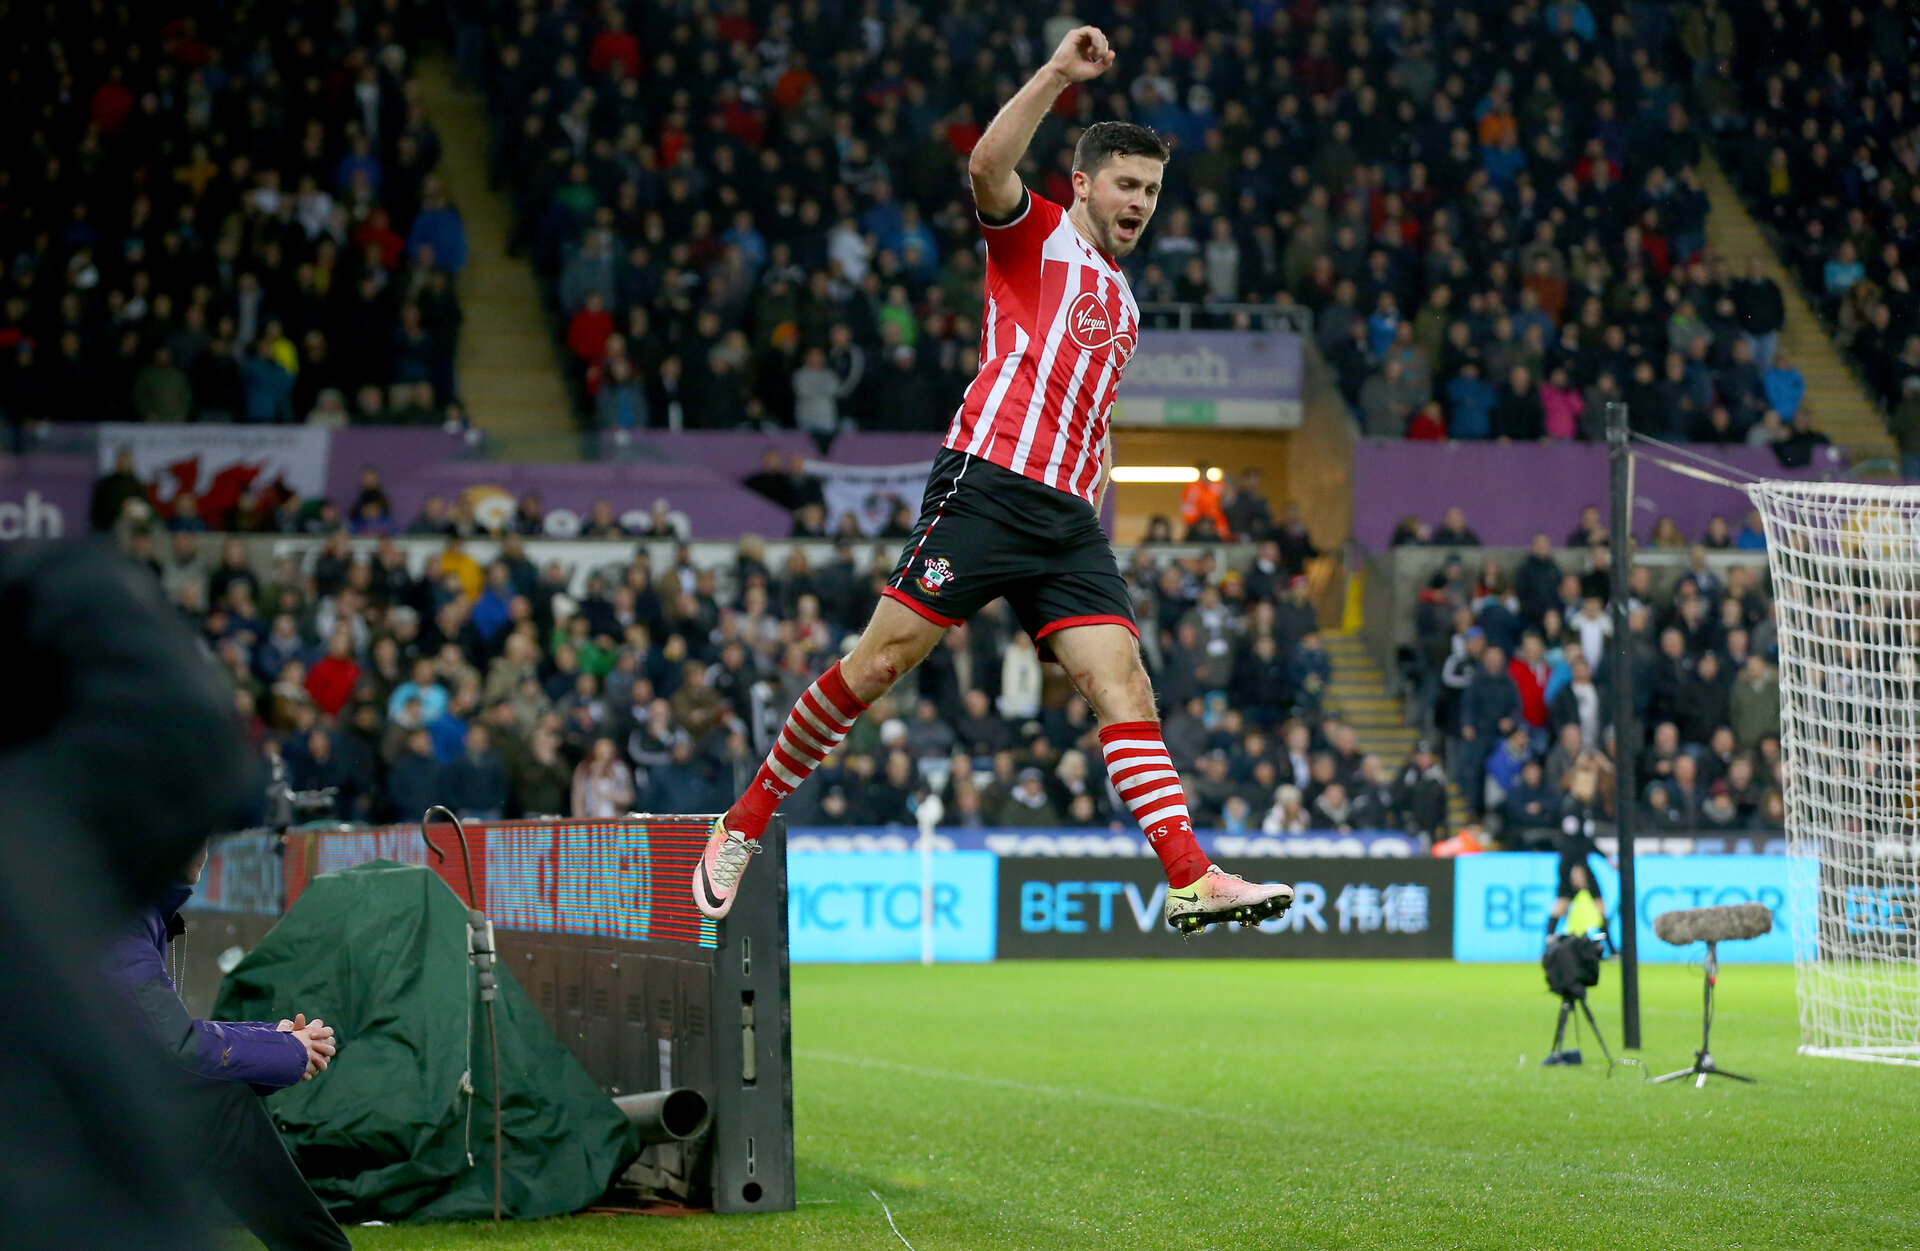 Shane Long celebrates during the Premier League match between Swansea City and Southampton at the Liberty Stadium, Swansea, Wales on 31 January 2017. Photo by Matt Watson/SFC/Digital South.